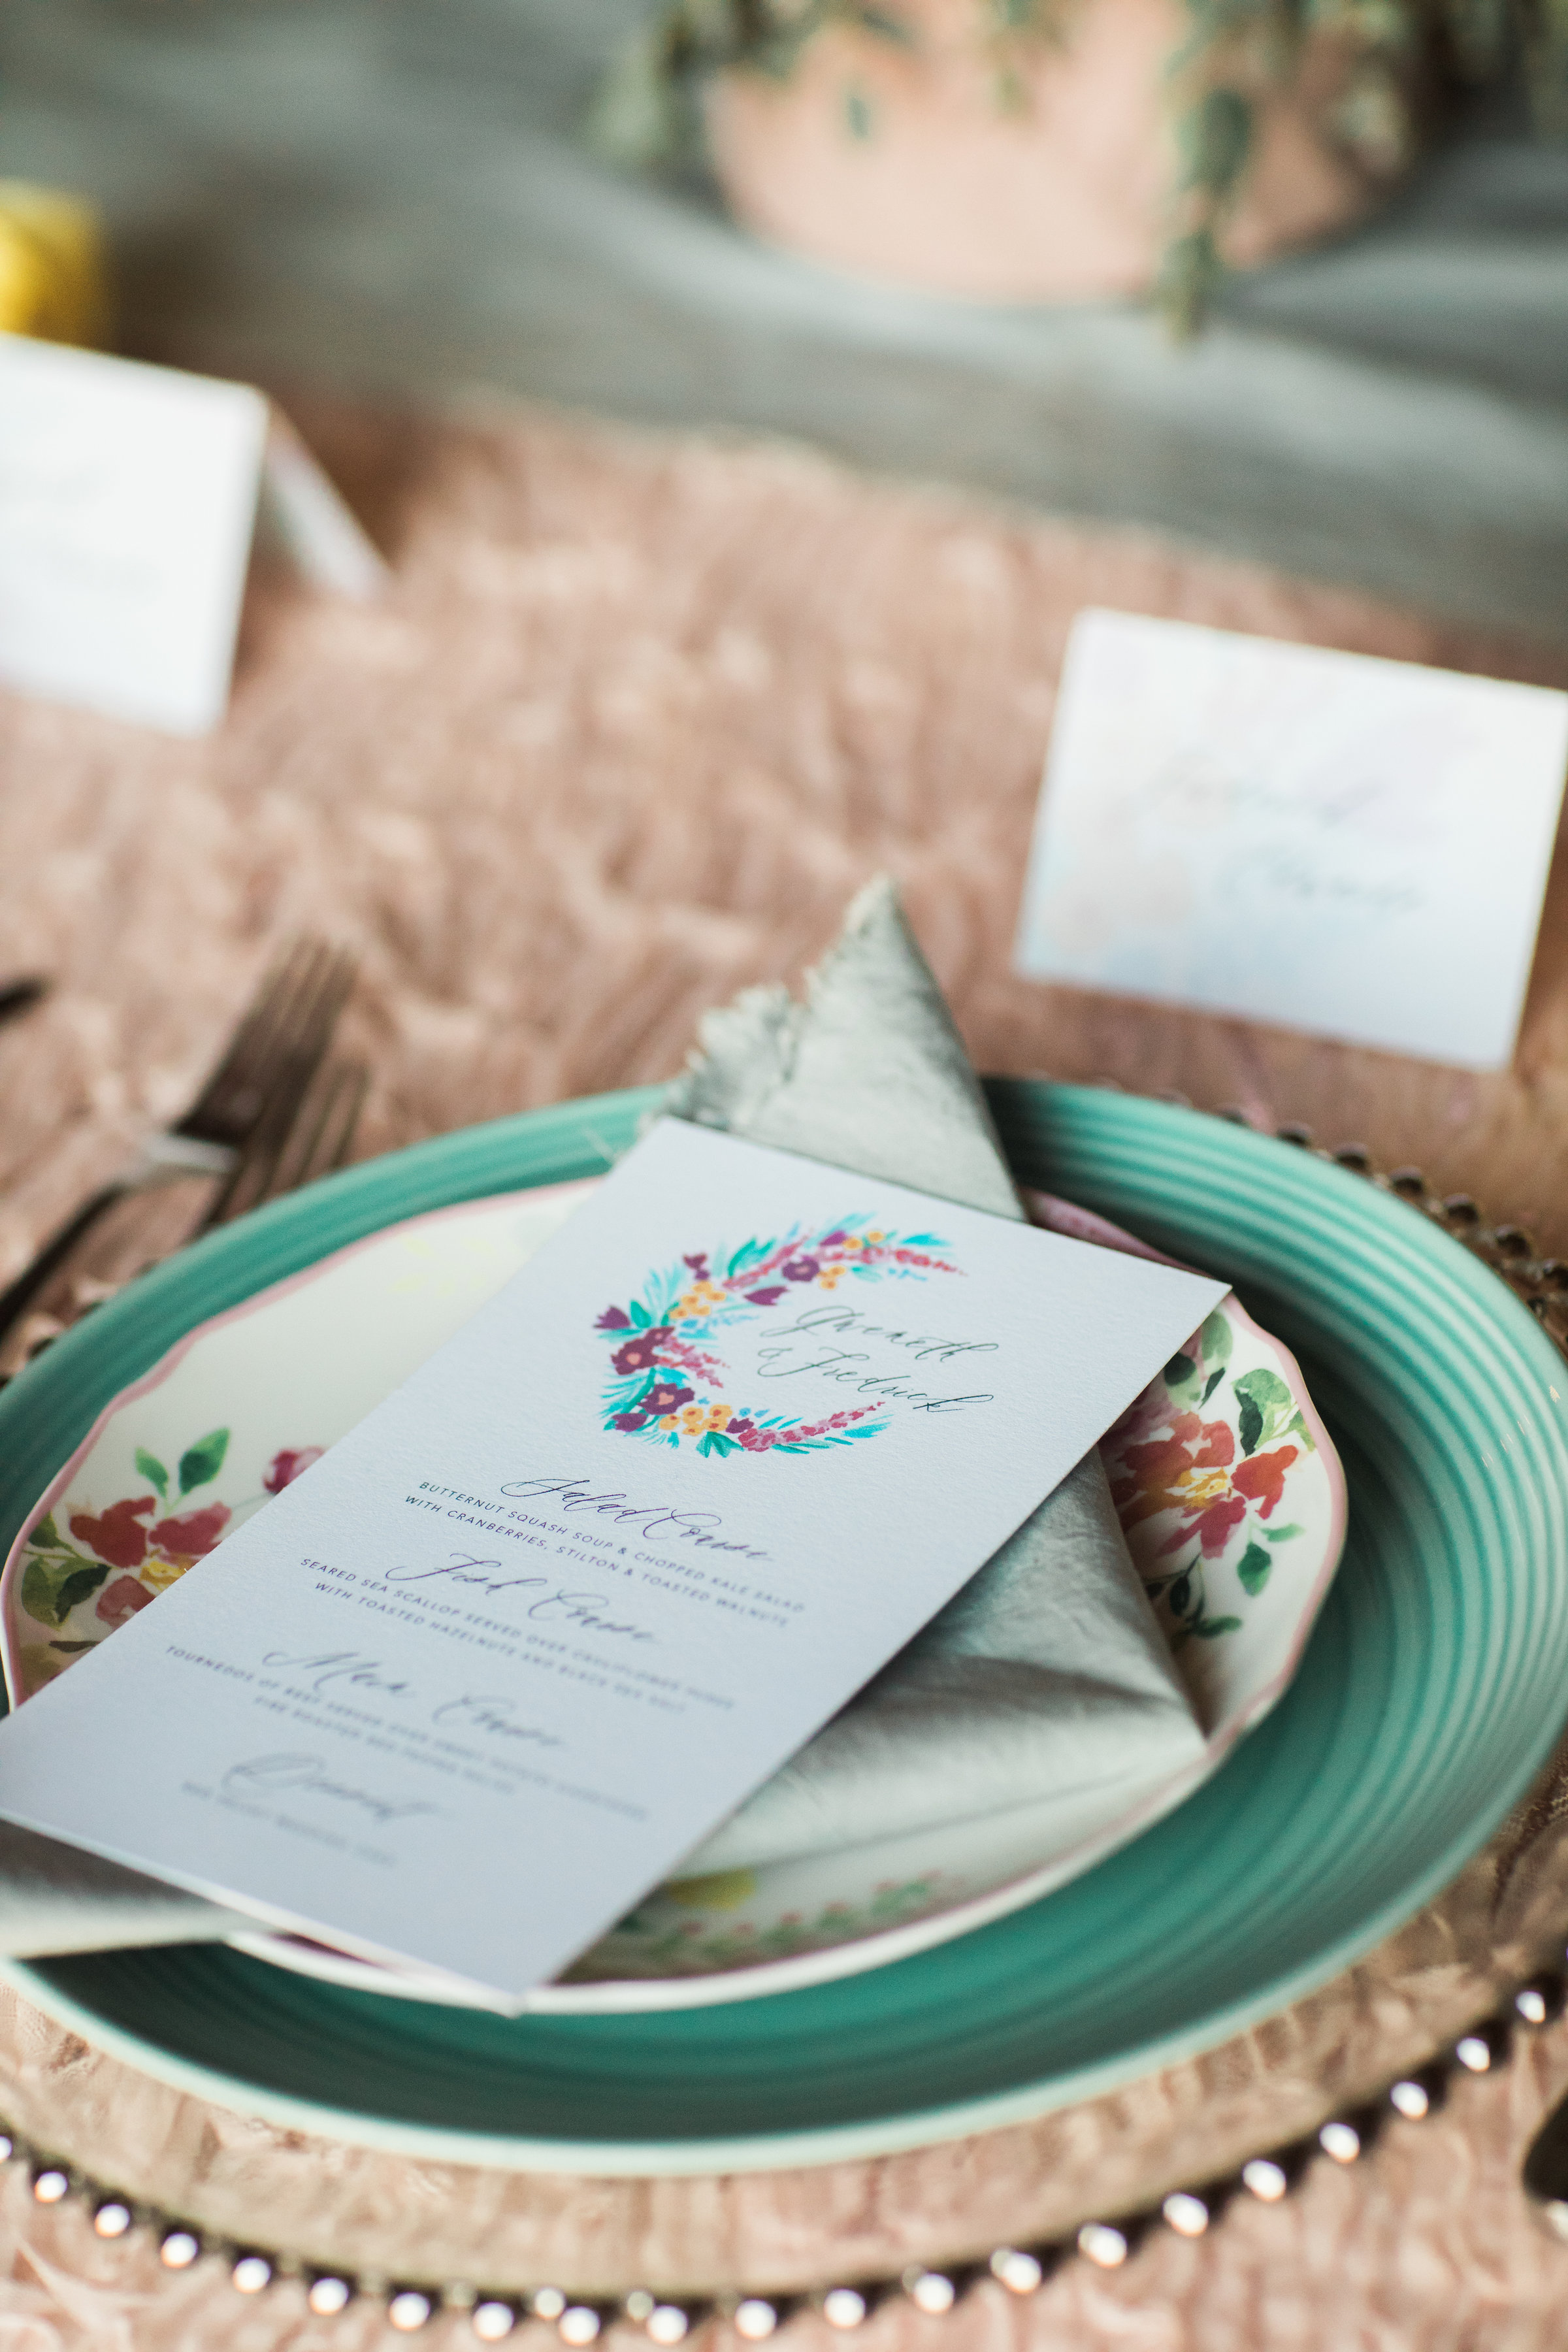 photo by Casey Brodley, napkin and table runner by Rosemarine Textiles, menu by Jade Social, event design by Pixie Dust Events